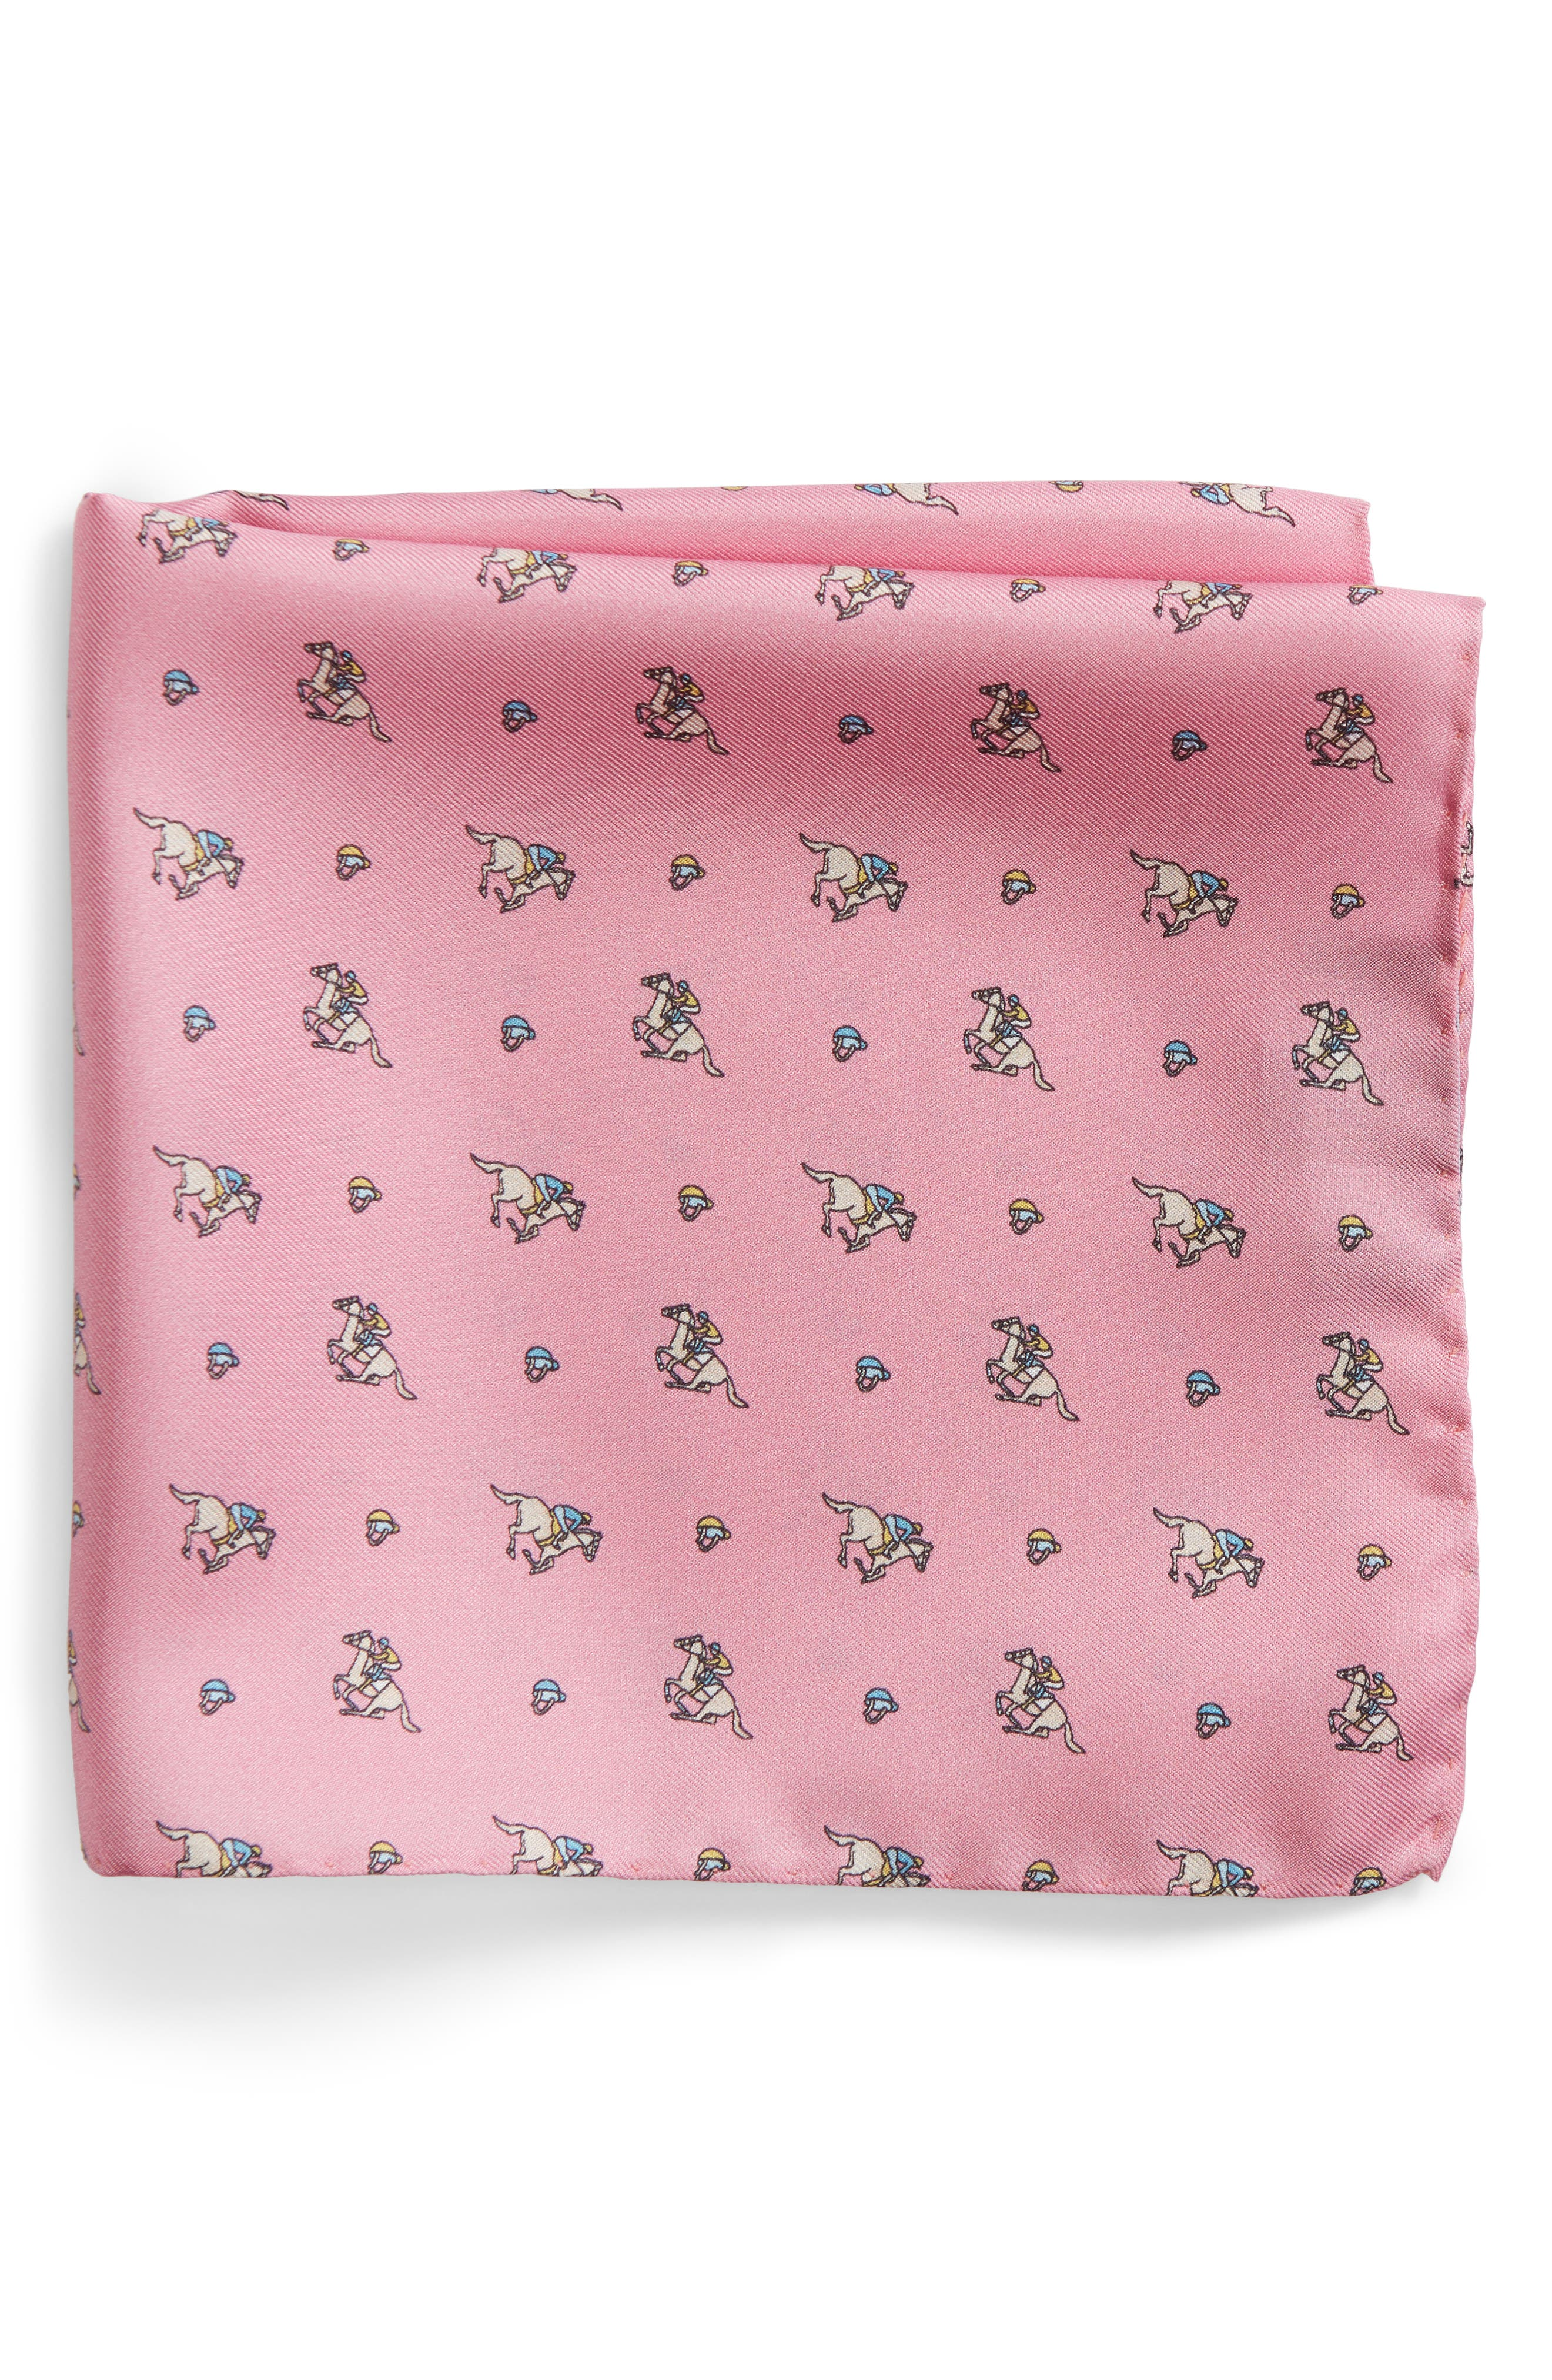 Riding Derby Silk Pocket Square,                         Main,                         color, Pink